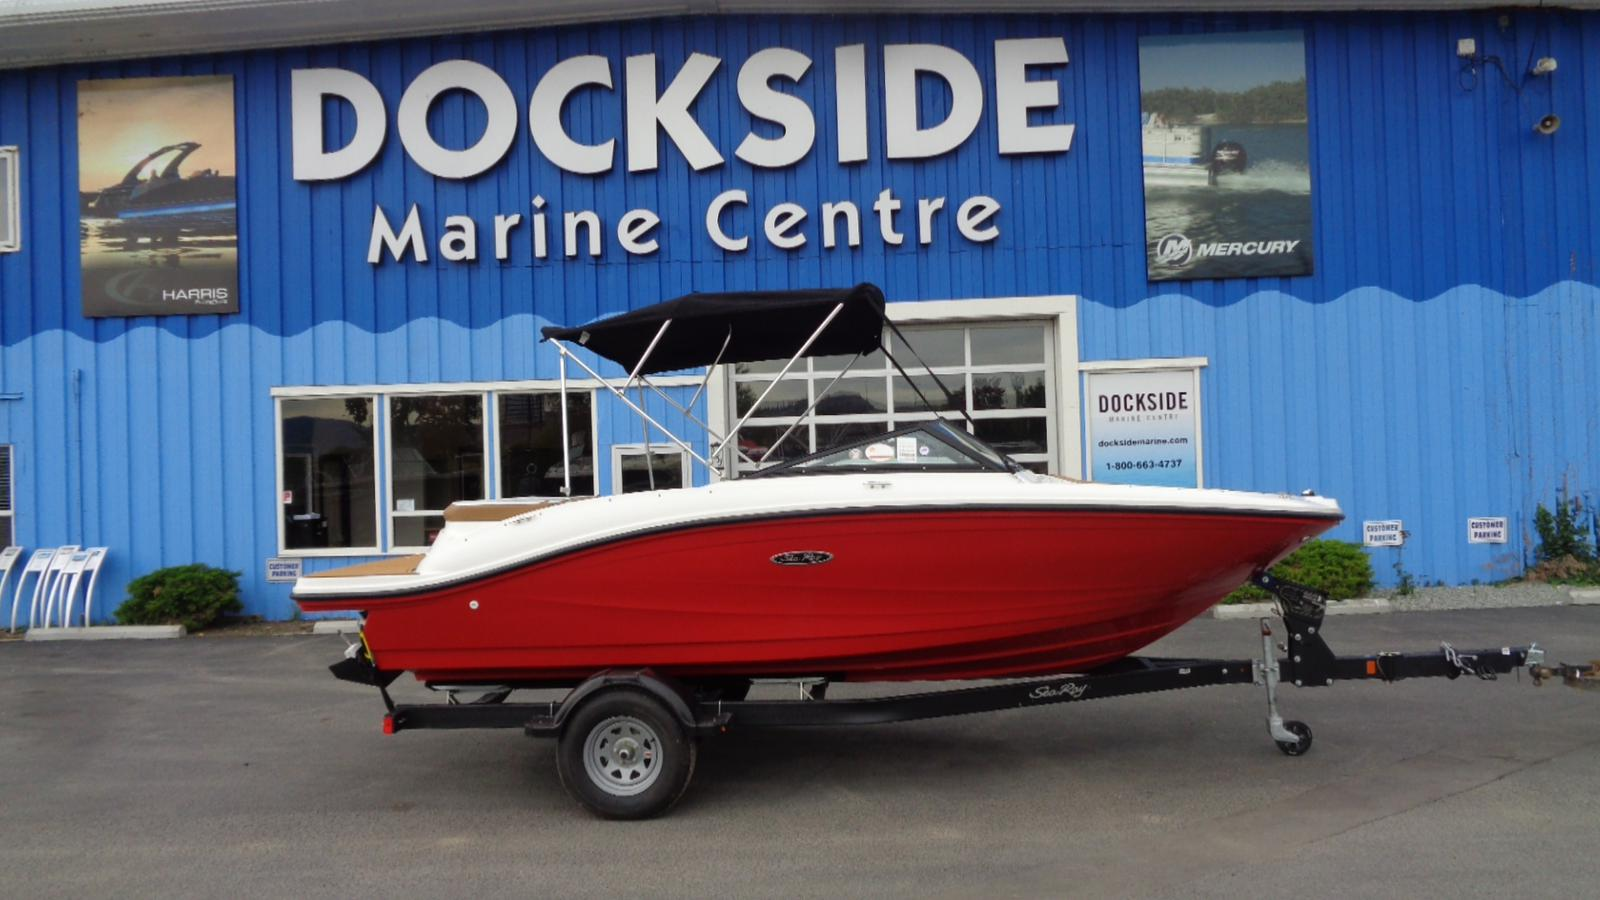 For Sale: 2018 Sea Ray Spx 190 20ft<br/>Dockside Marine Centre, LTD.